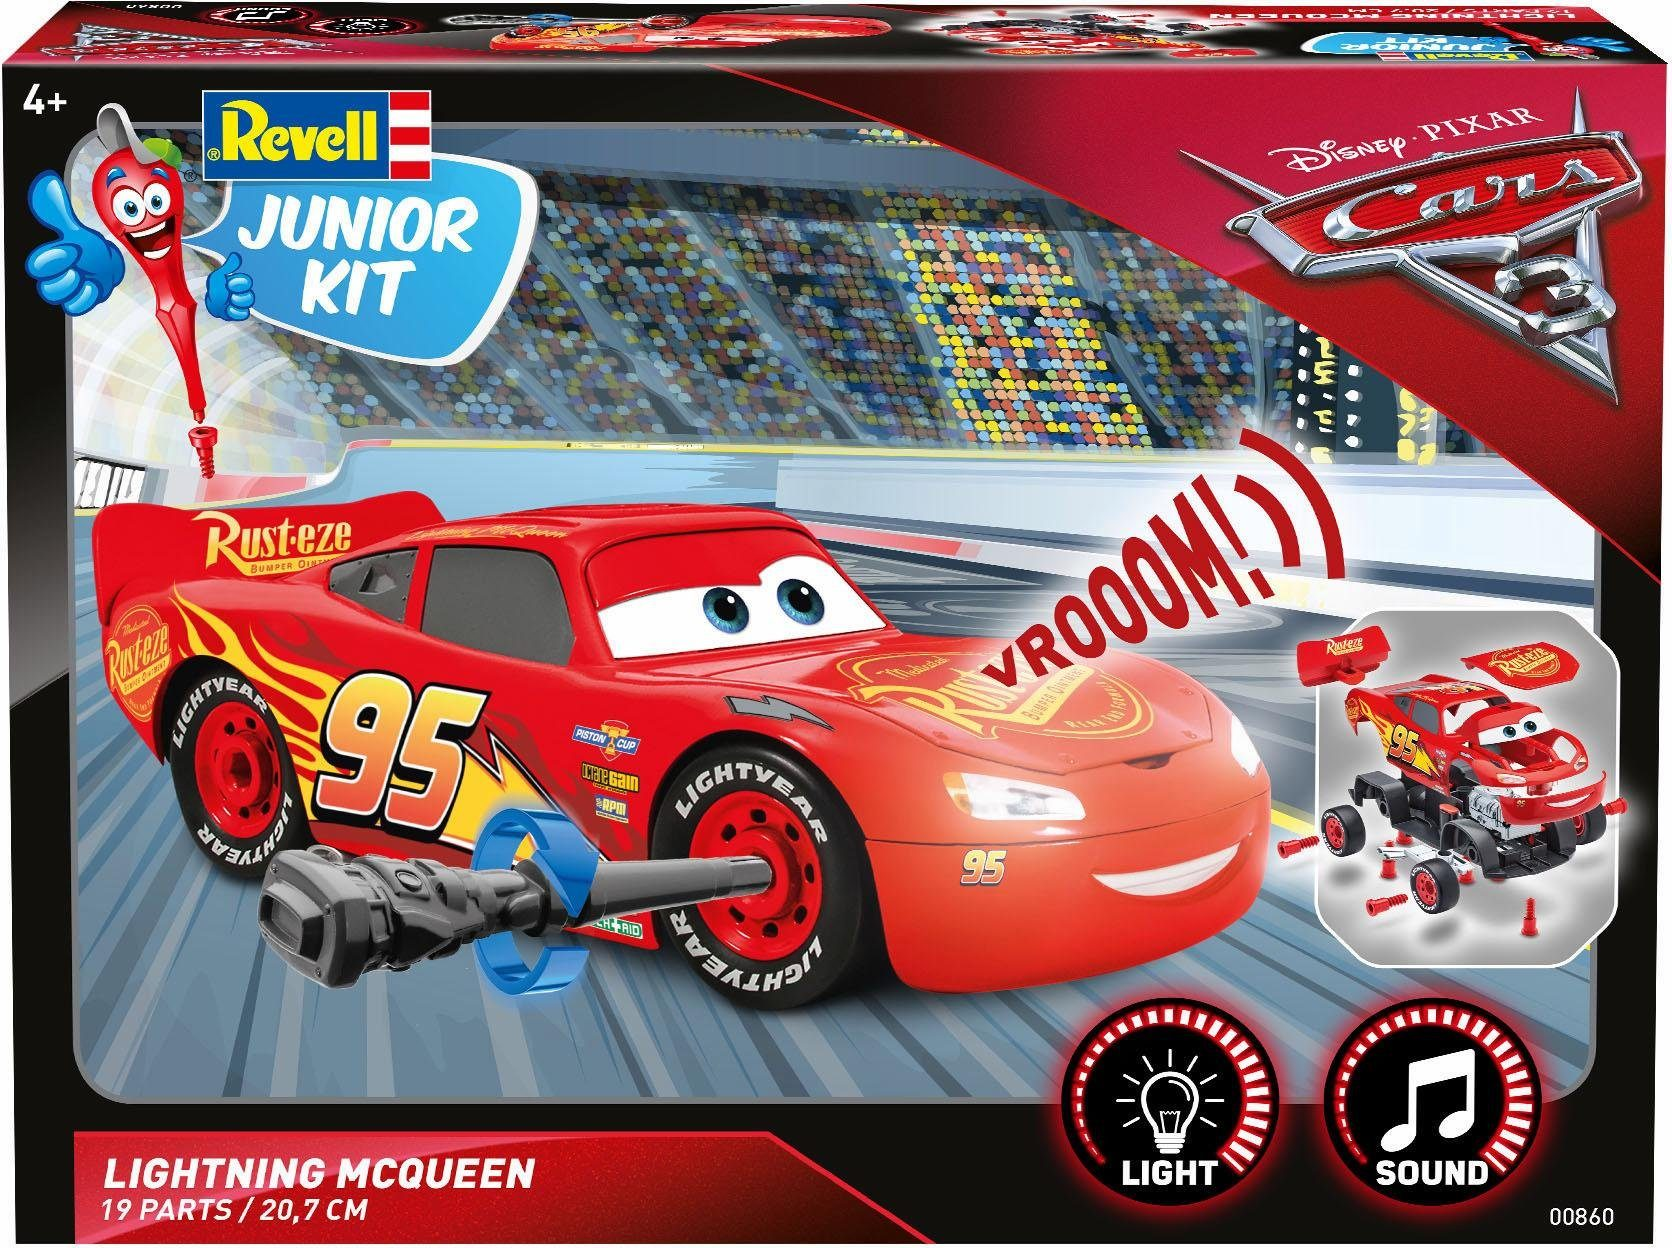 Revell Modellbausatz Auto mit Licht und Sound, »Junior Kit Disney Cars Lightning McQueen«